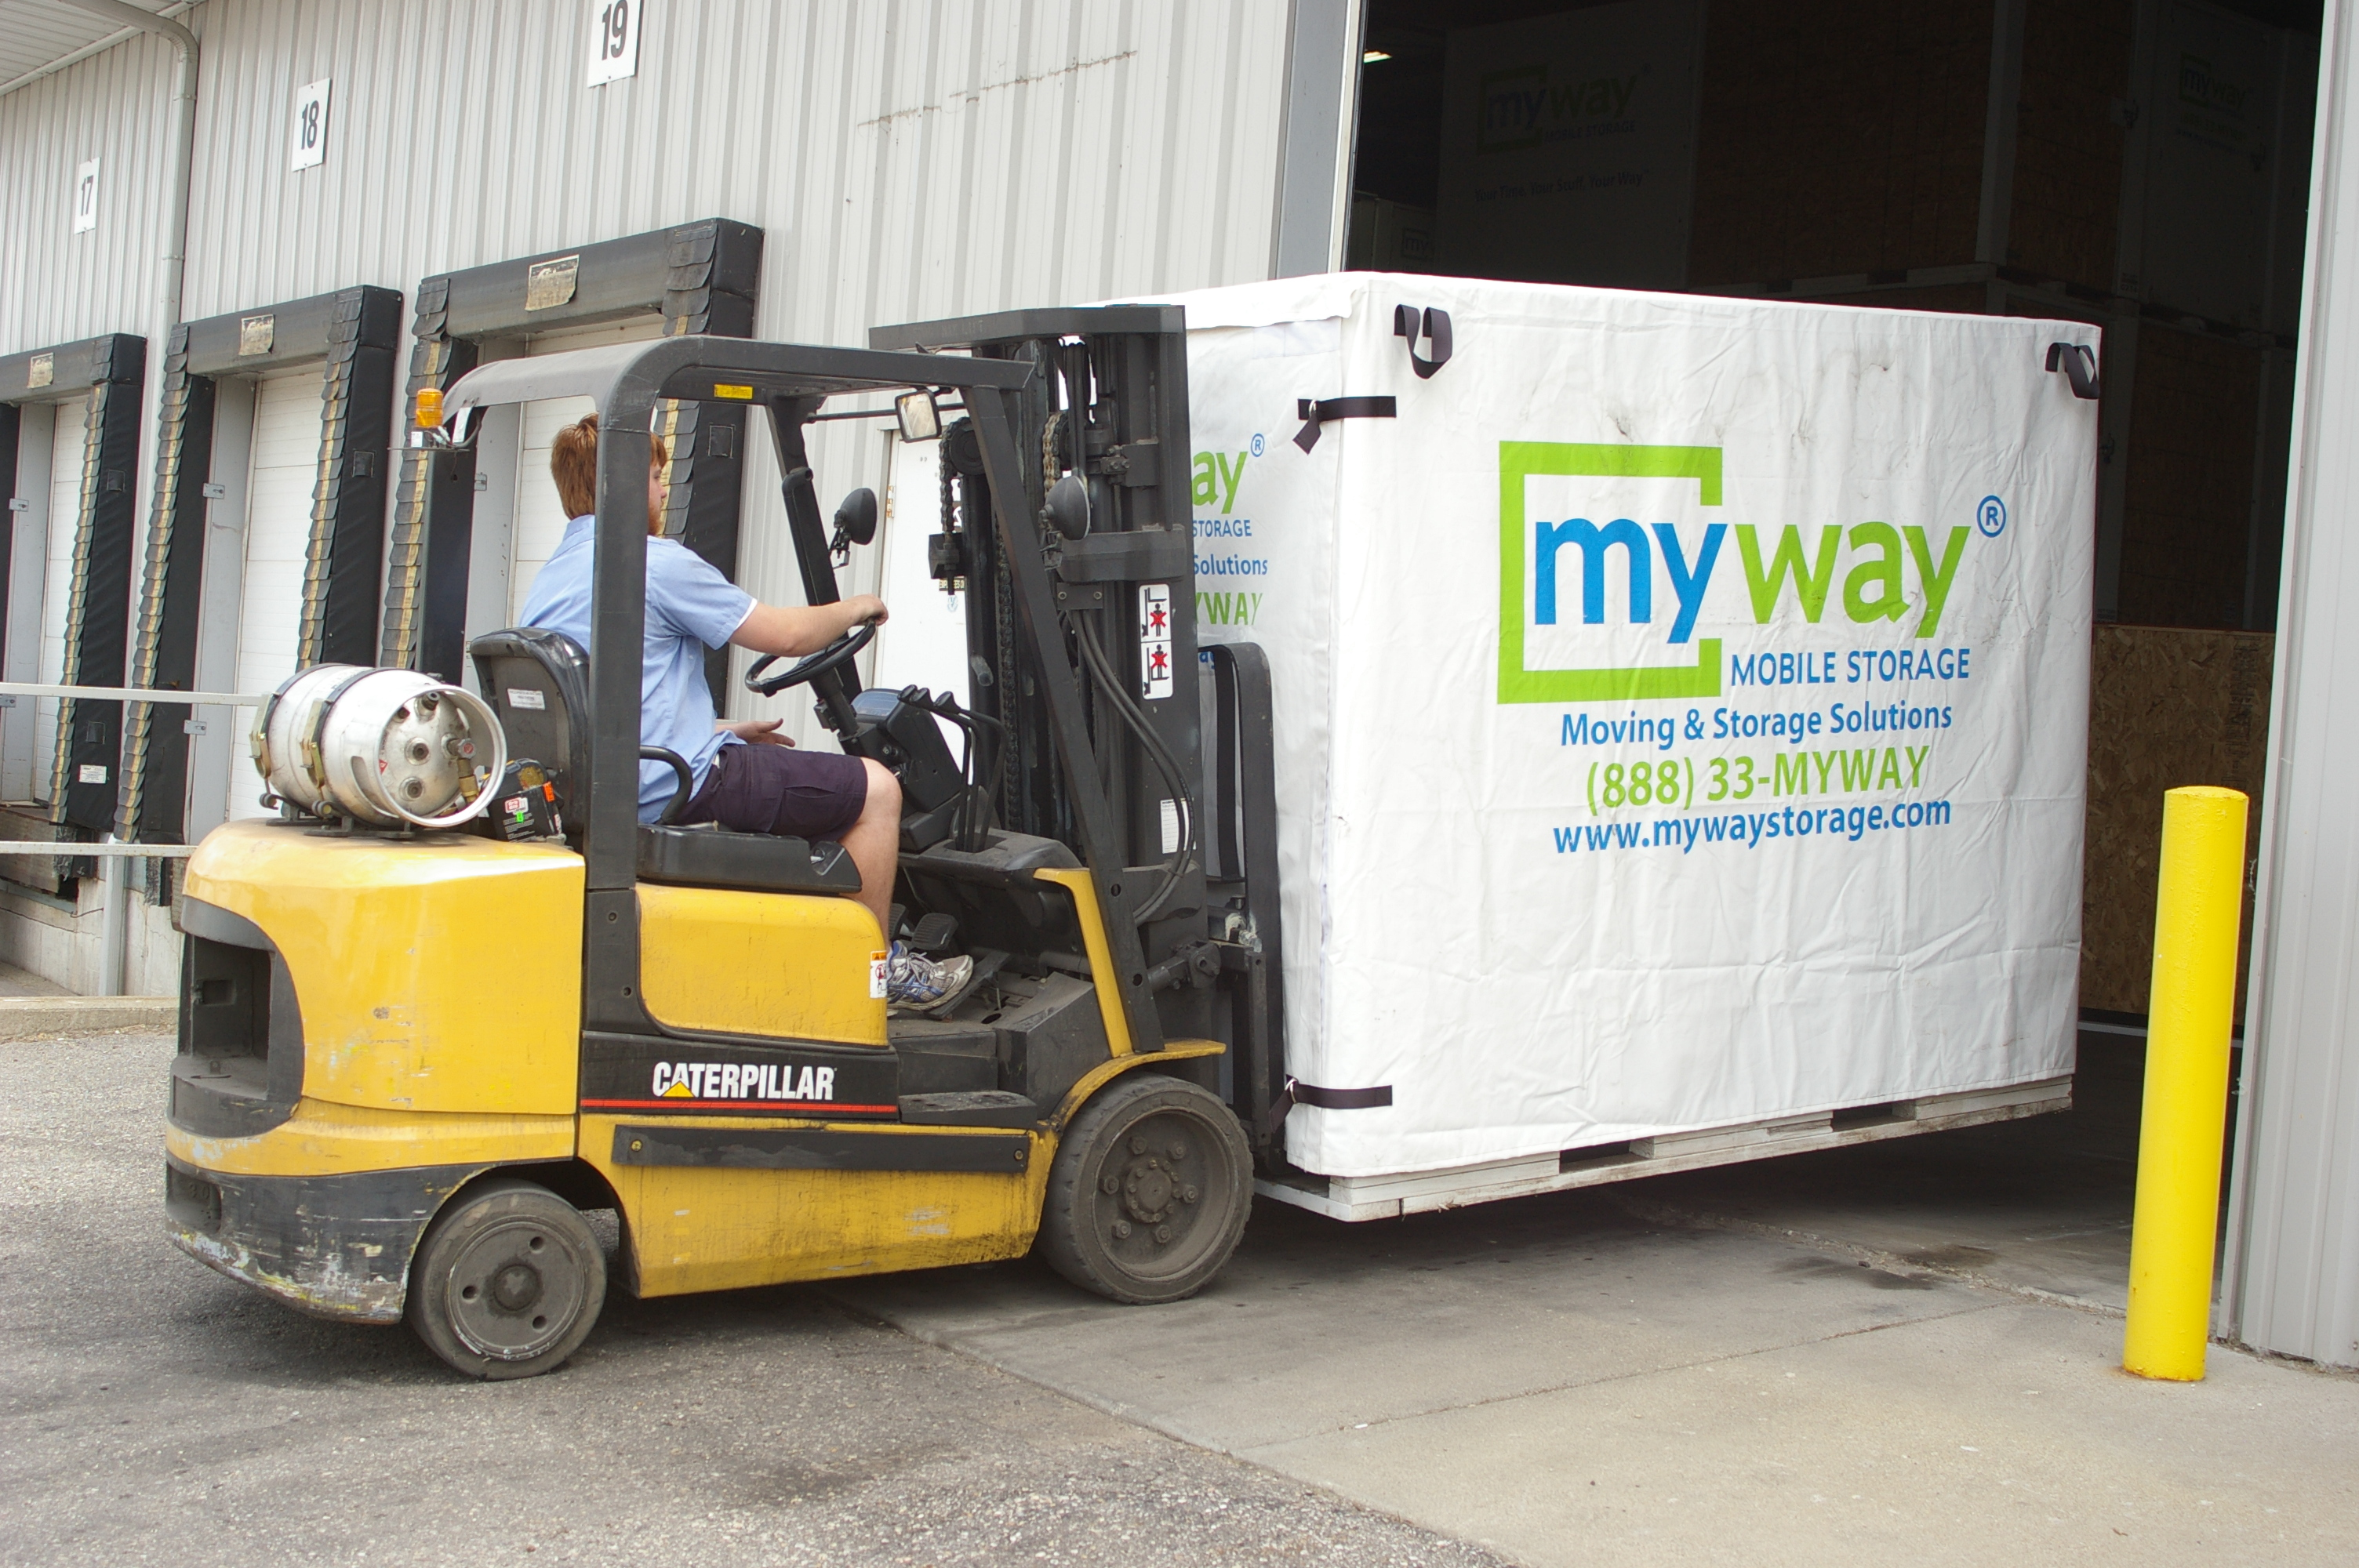 myway mobile storage facility